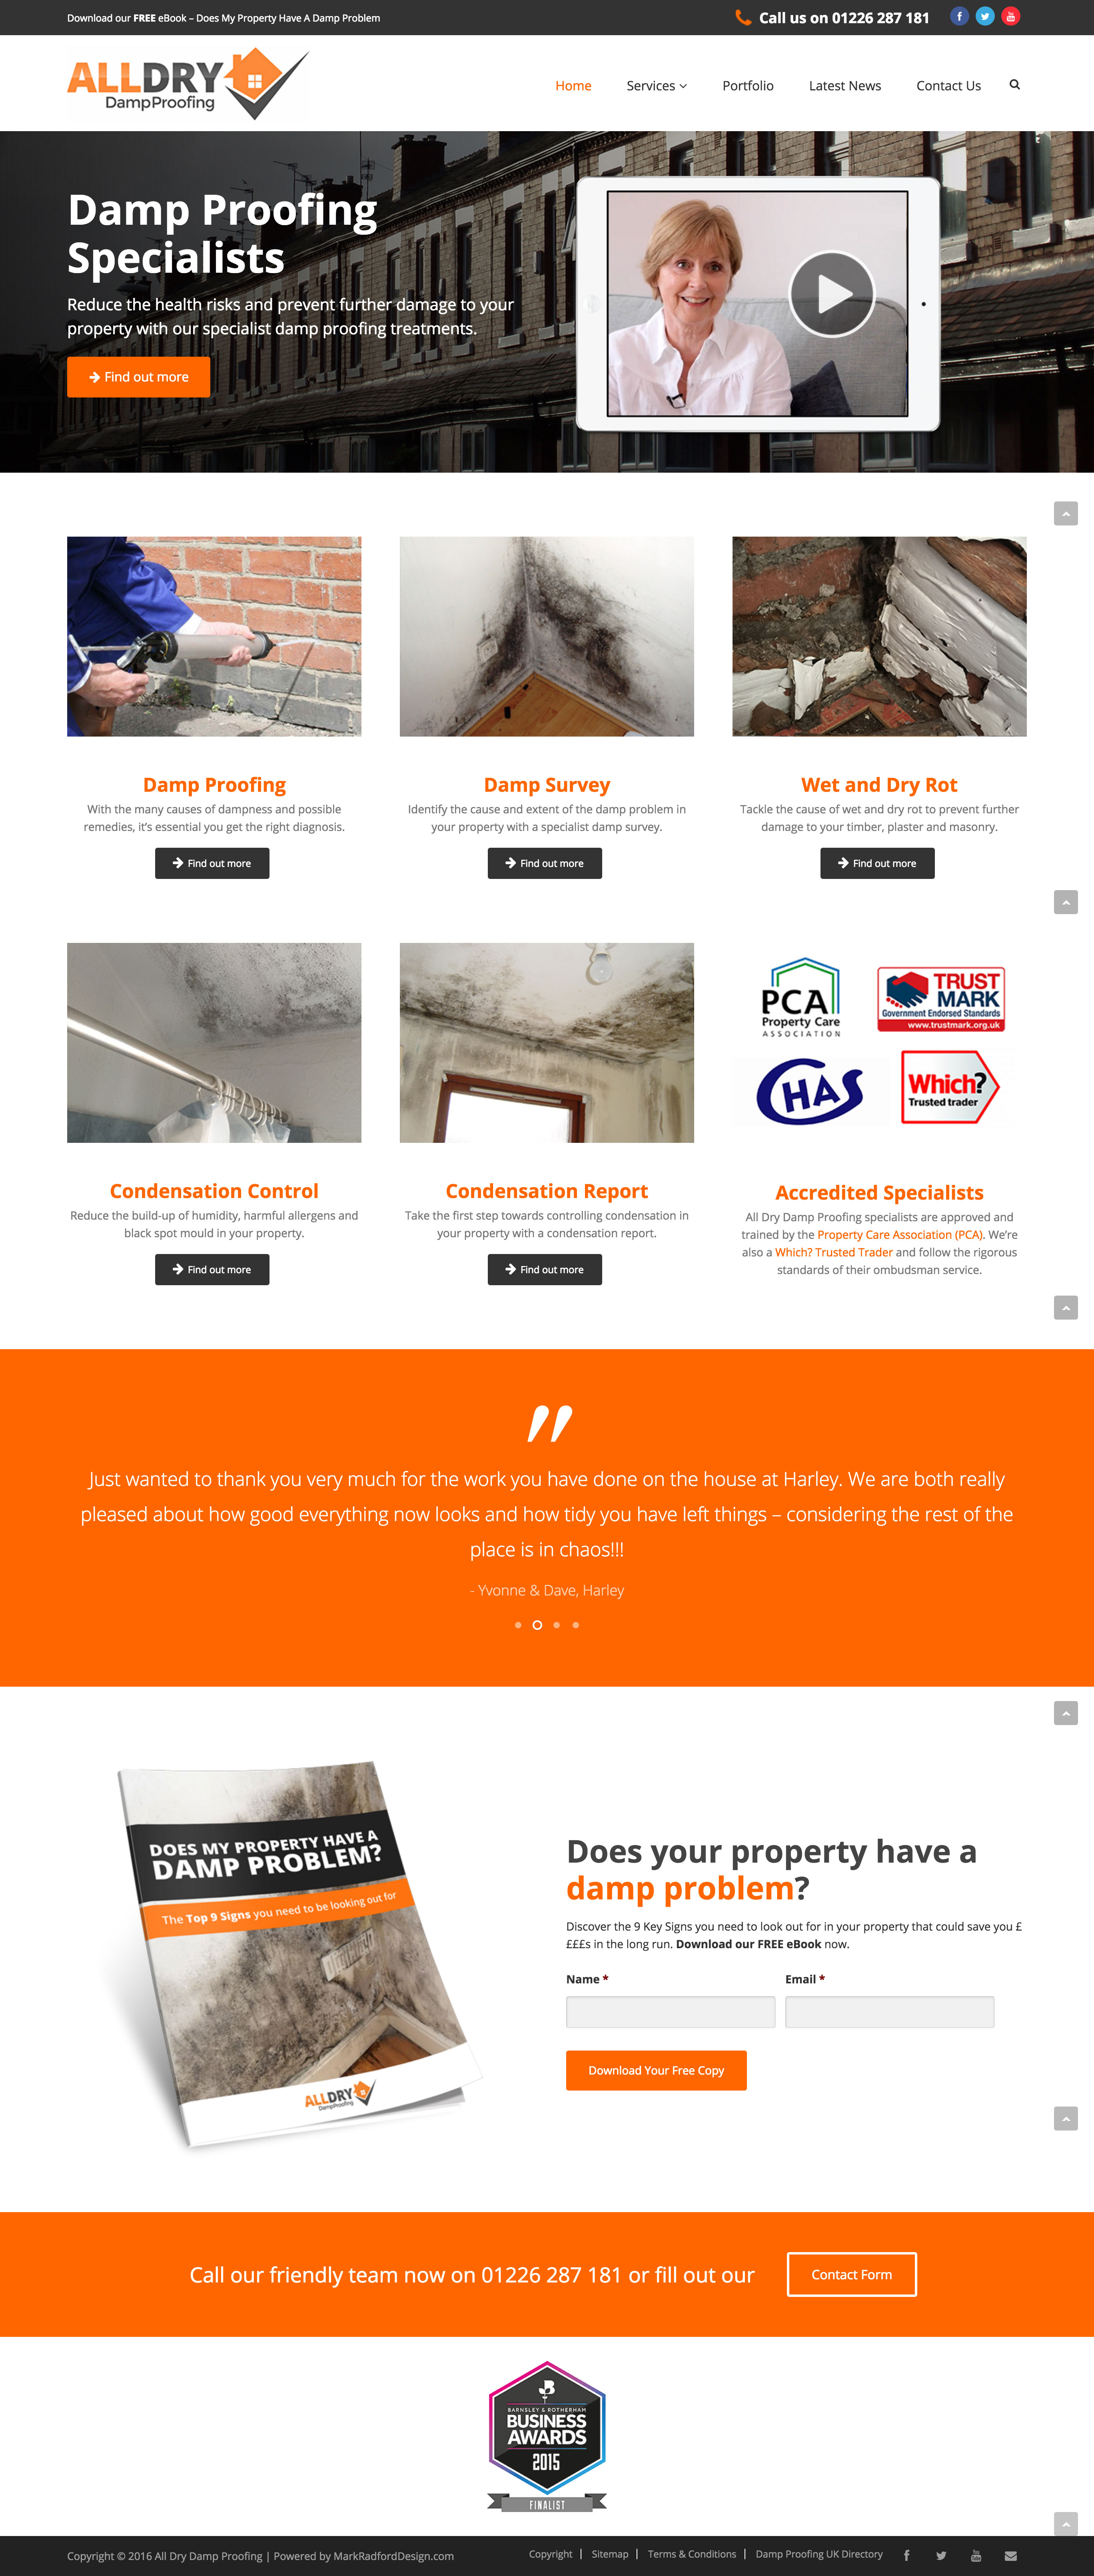 All-Dry-Damp-Proofing